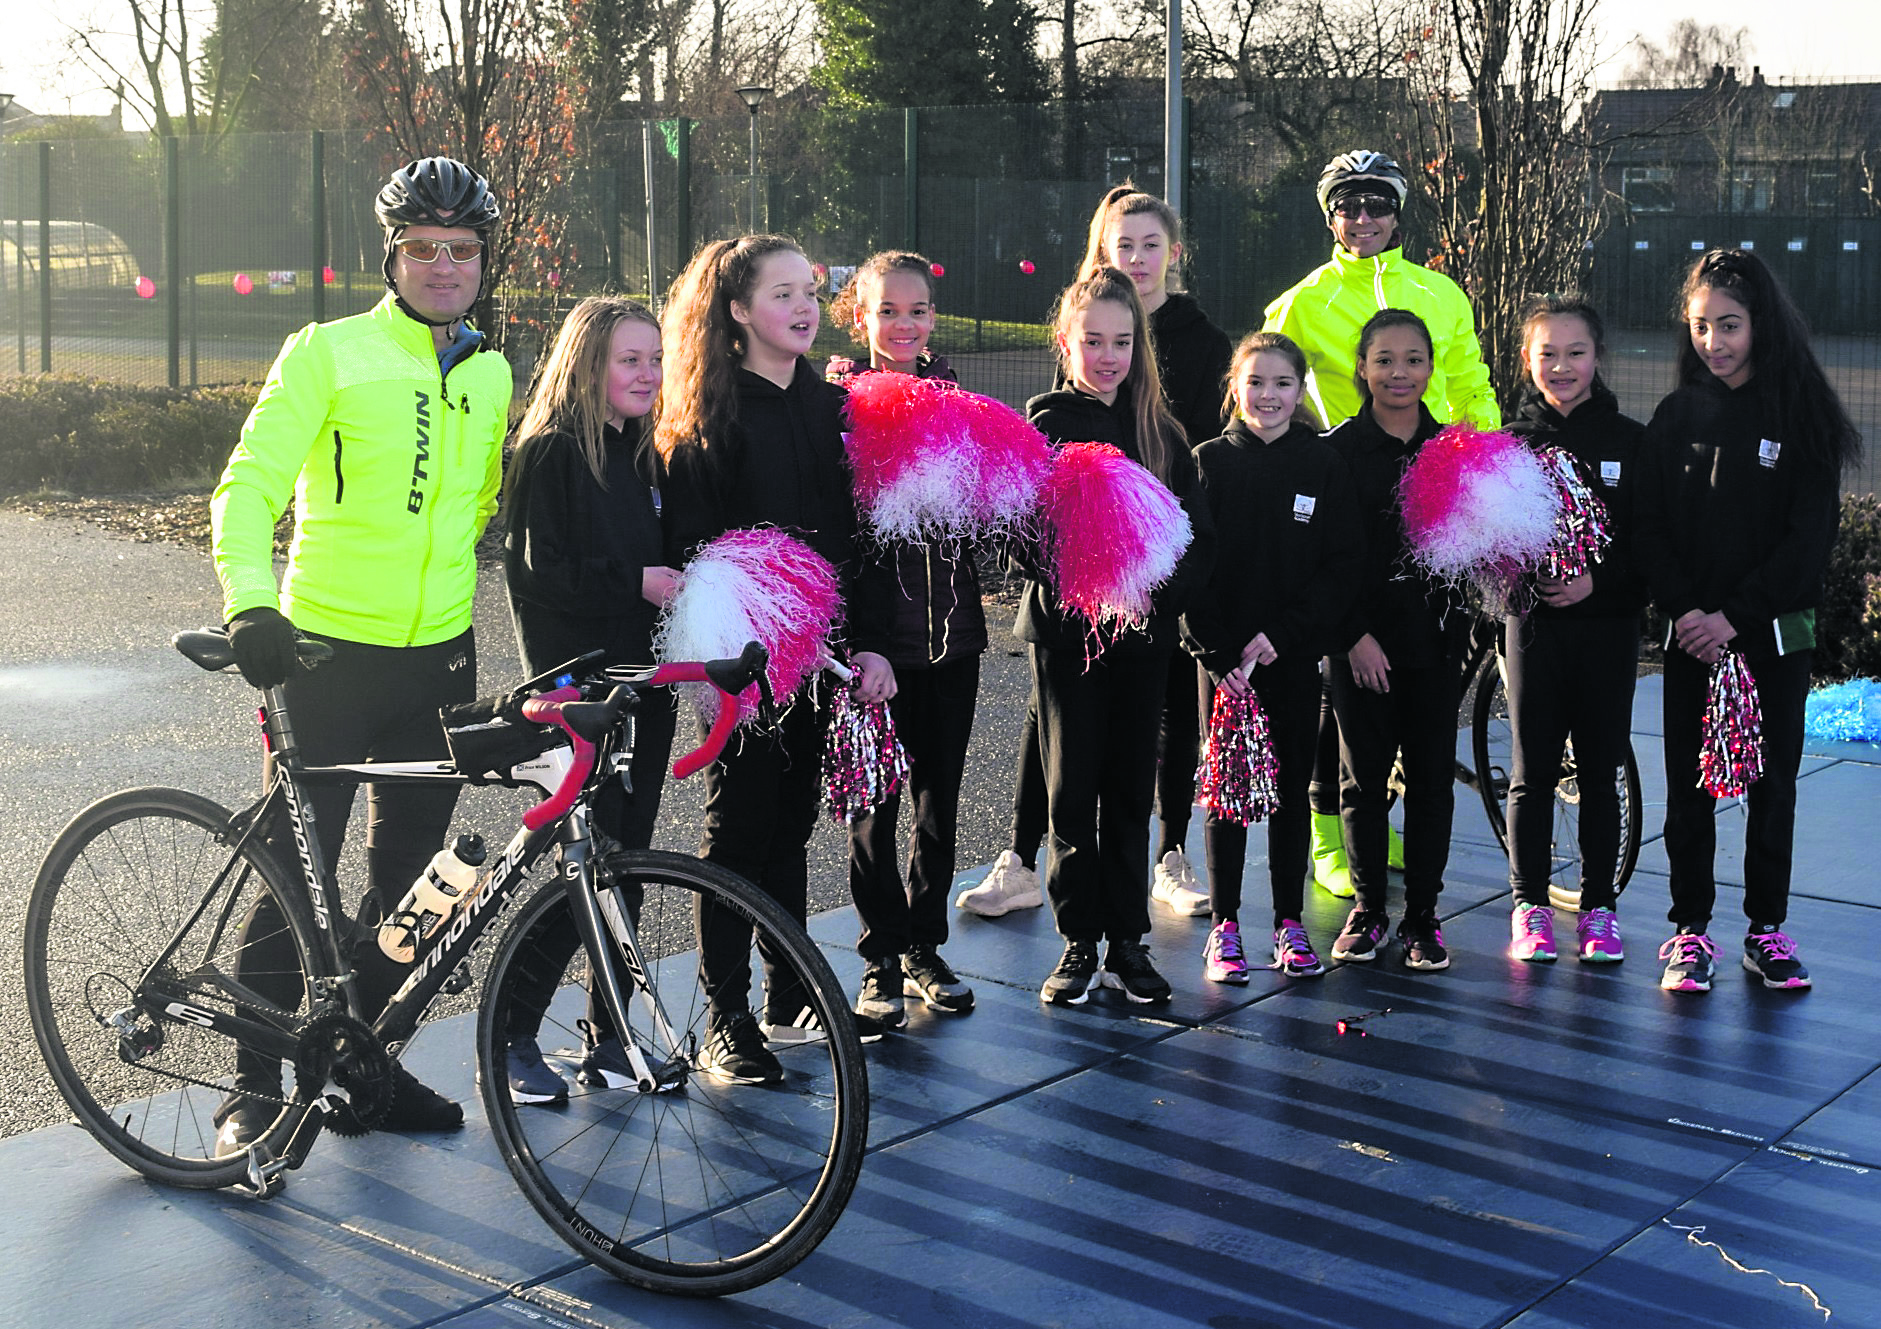 Students get their running shoes on in support of national cycle challenge